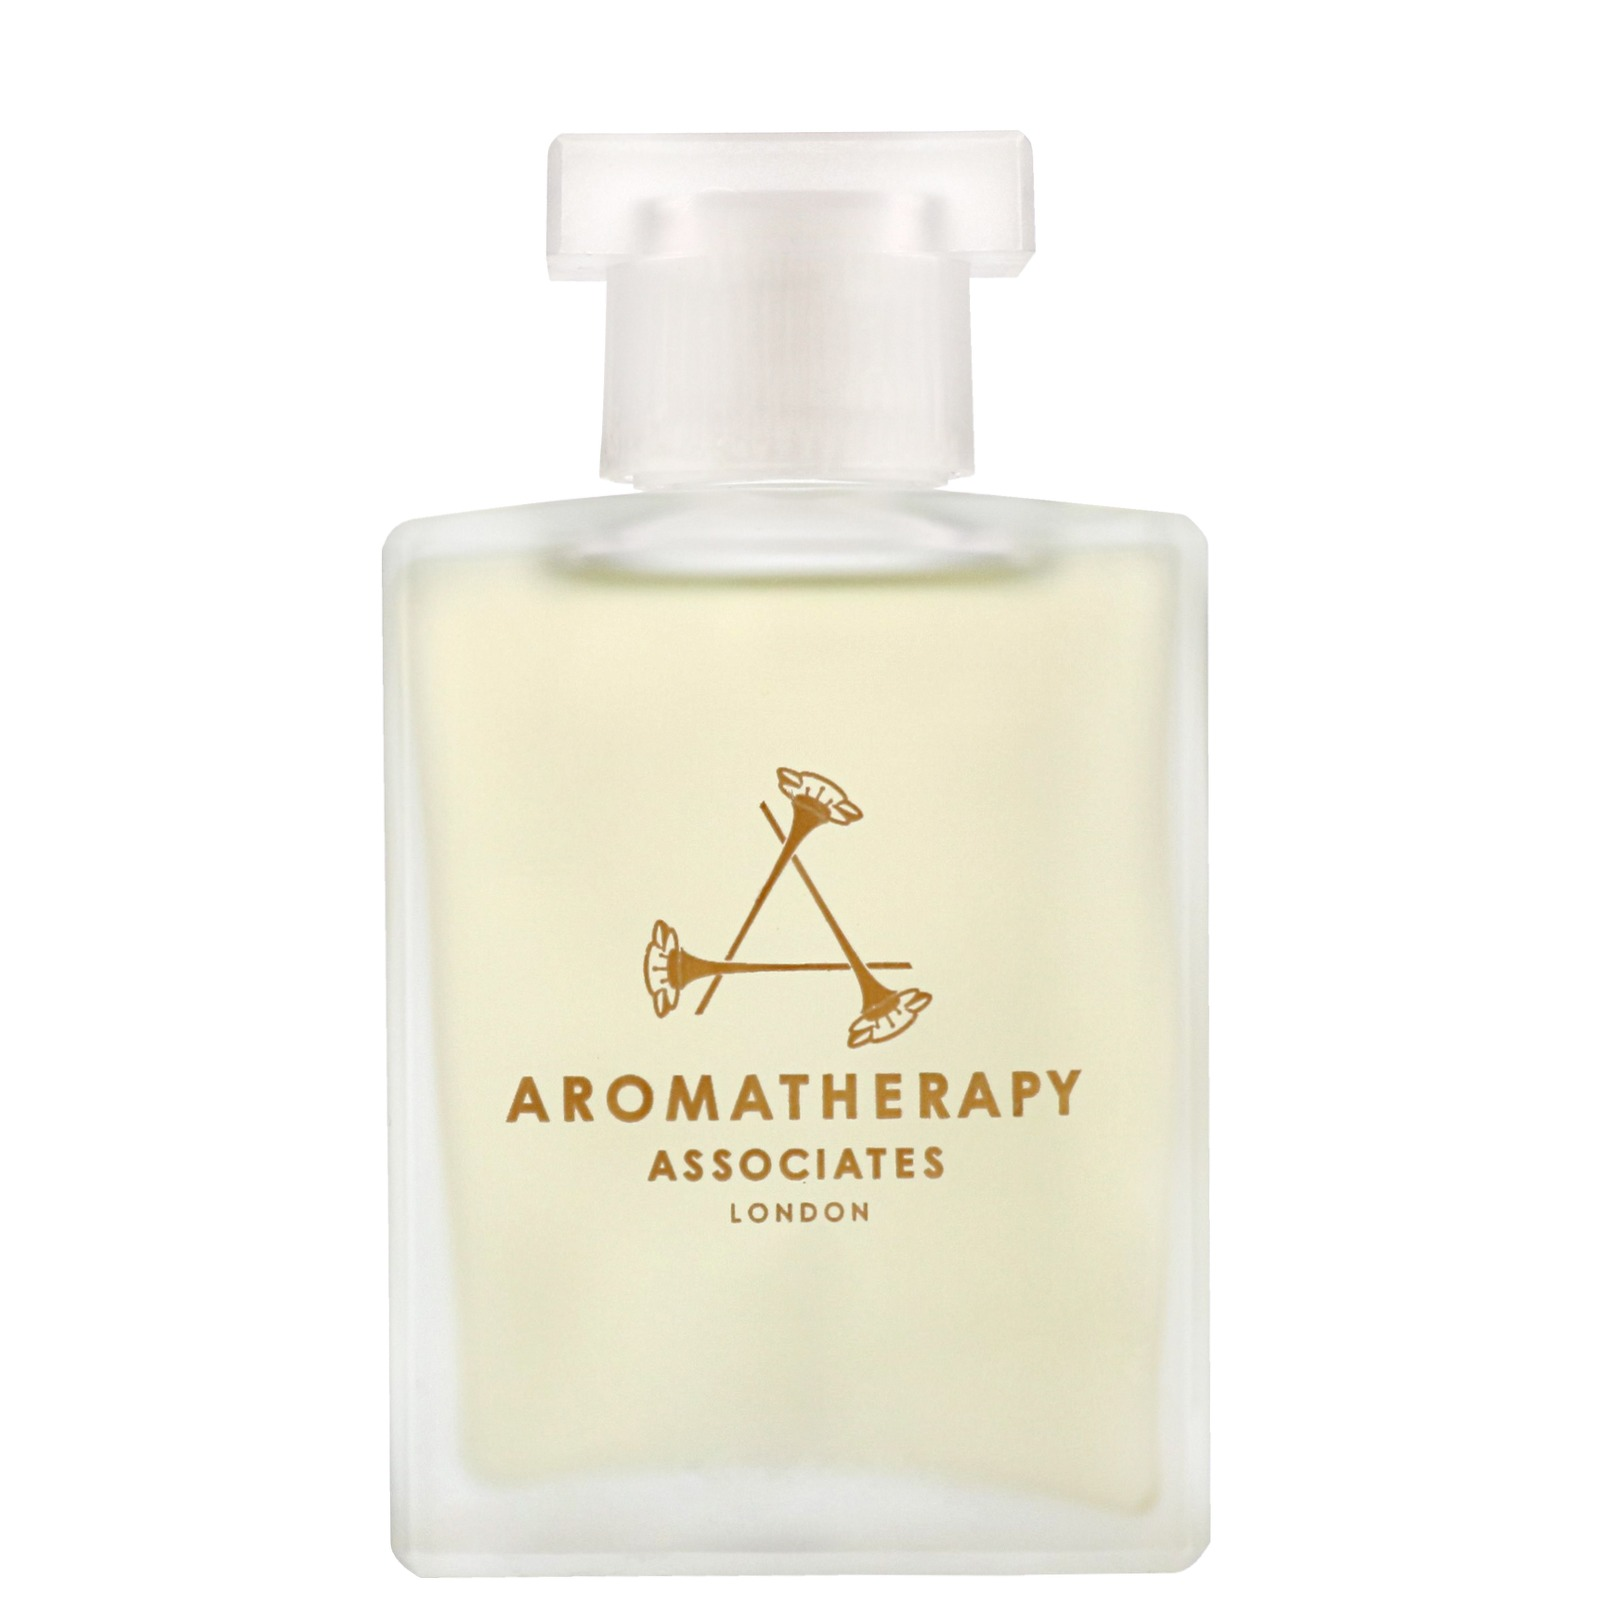 Aromatherapy Associates Bath & Body De-Stress Muscle Bath & Shower Oil 55ml